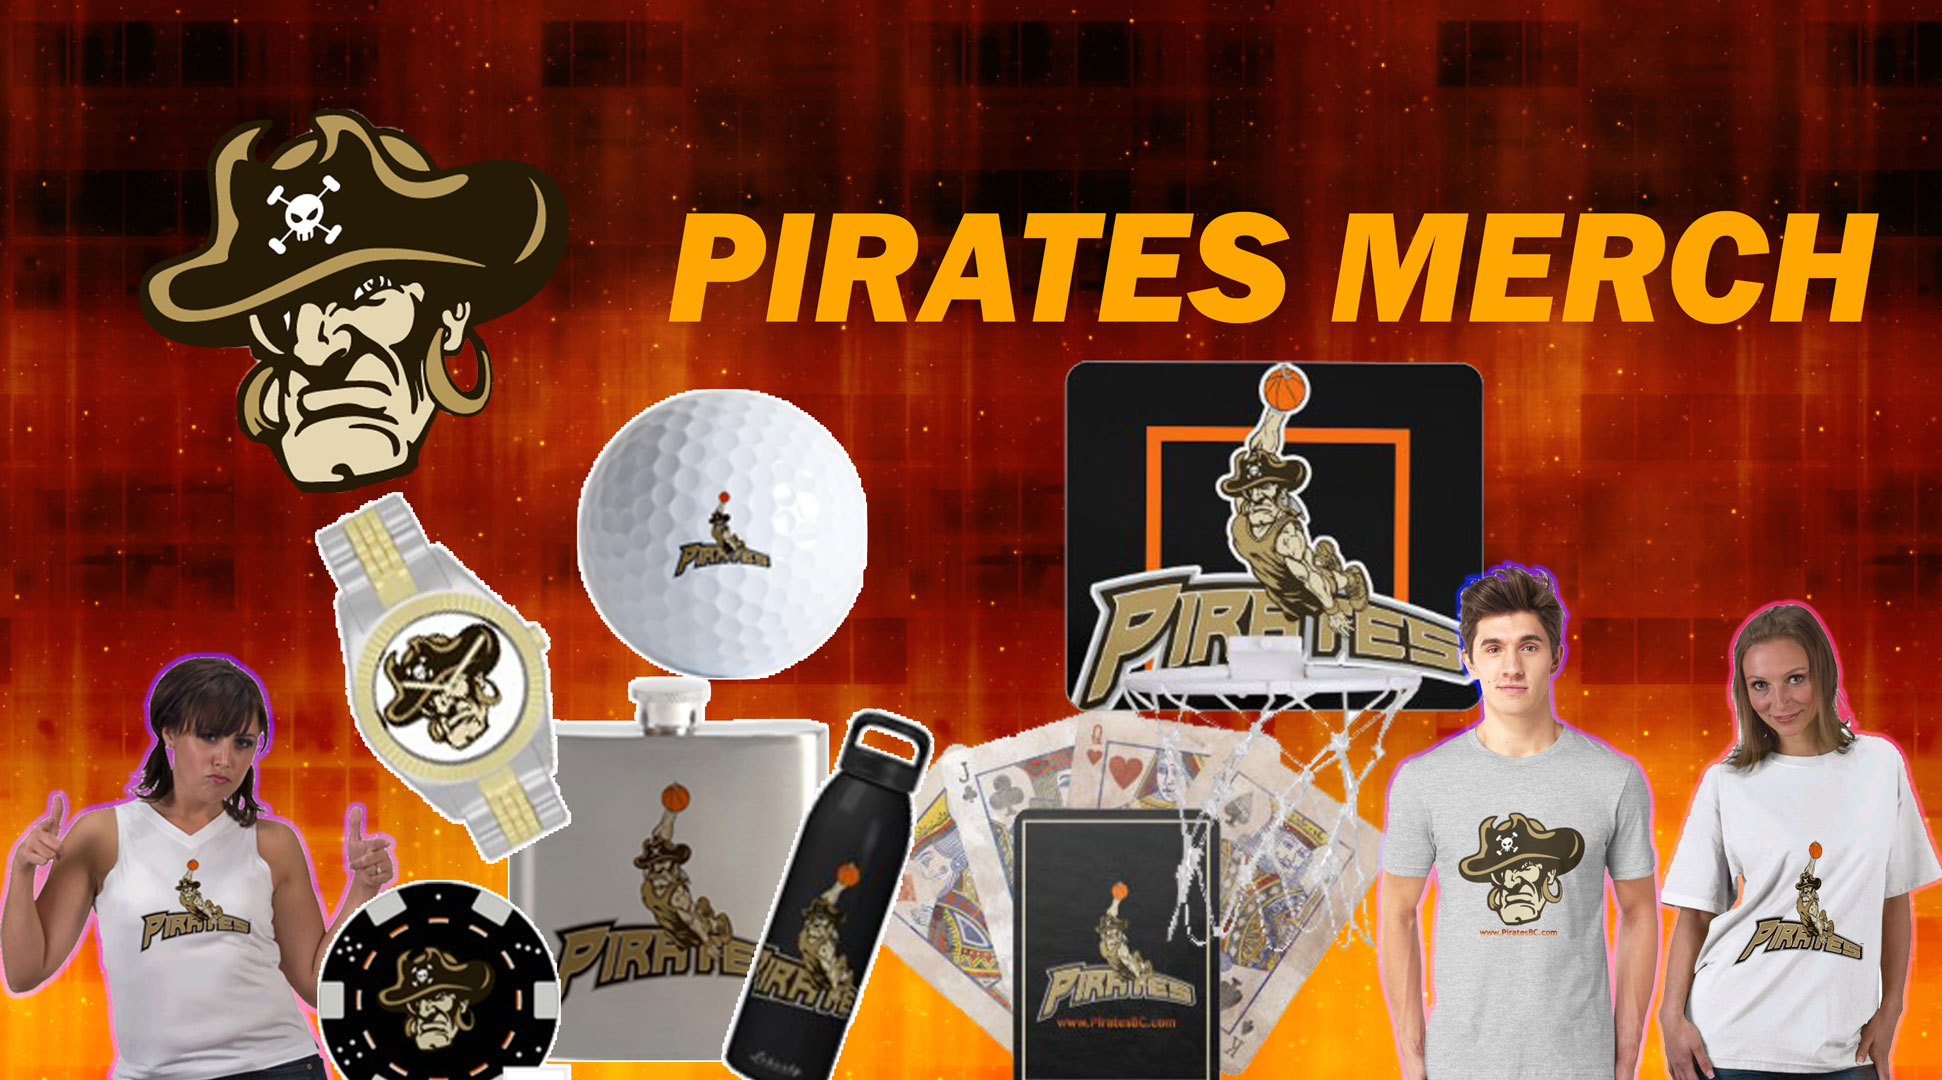 Pirates Merchandise